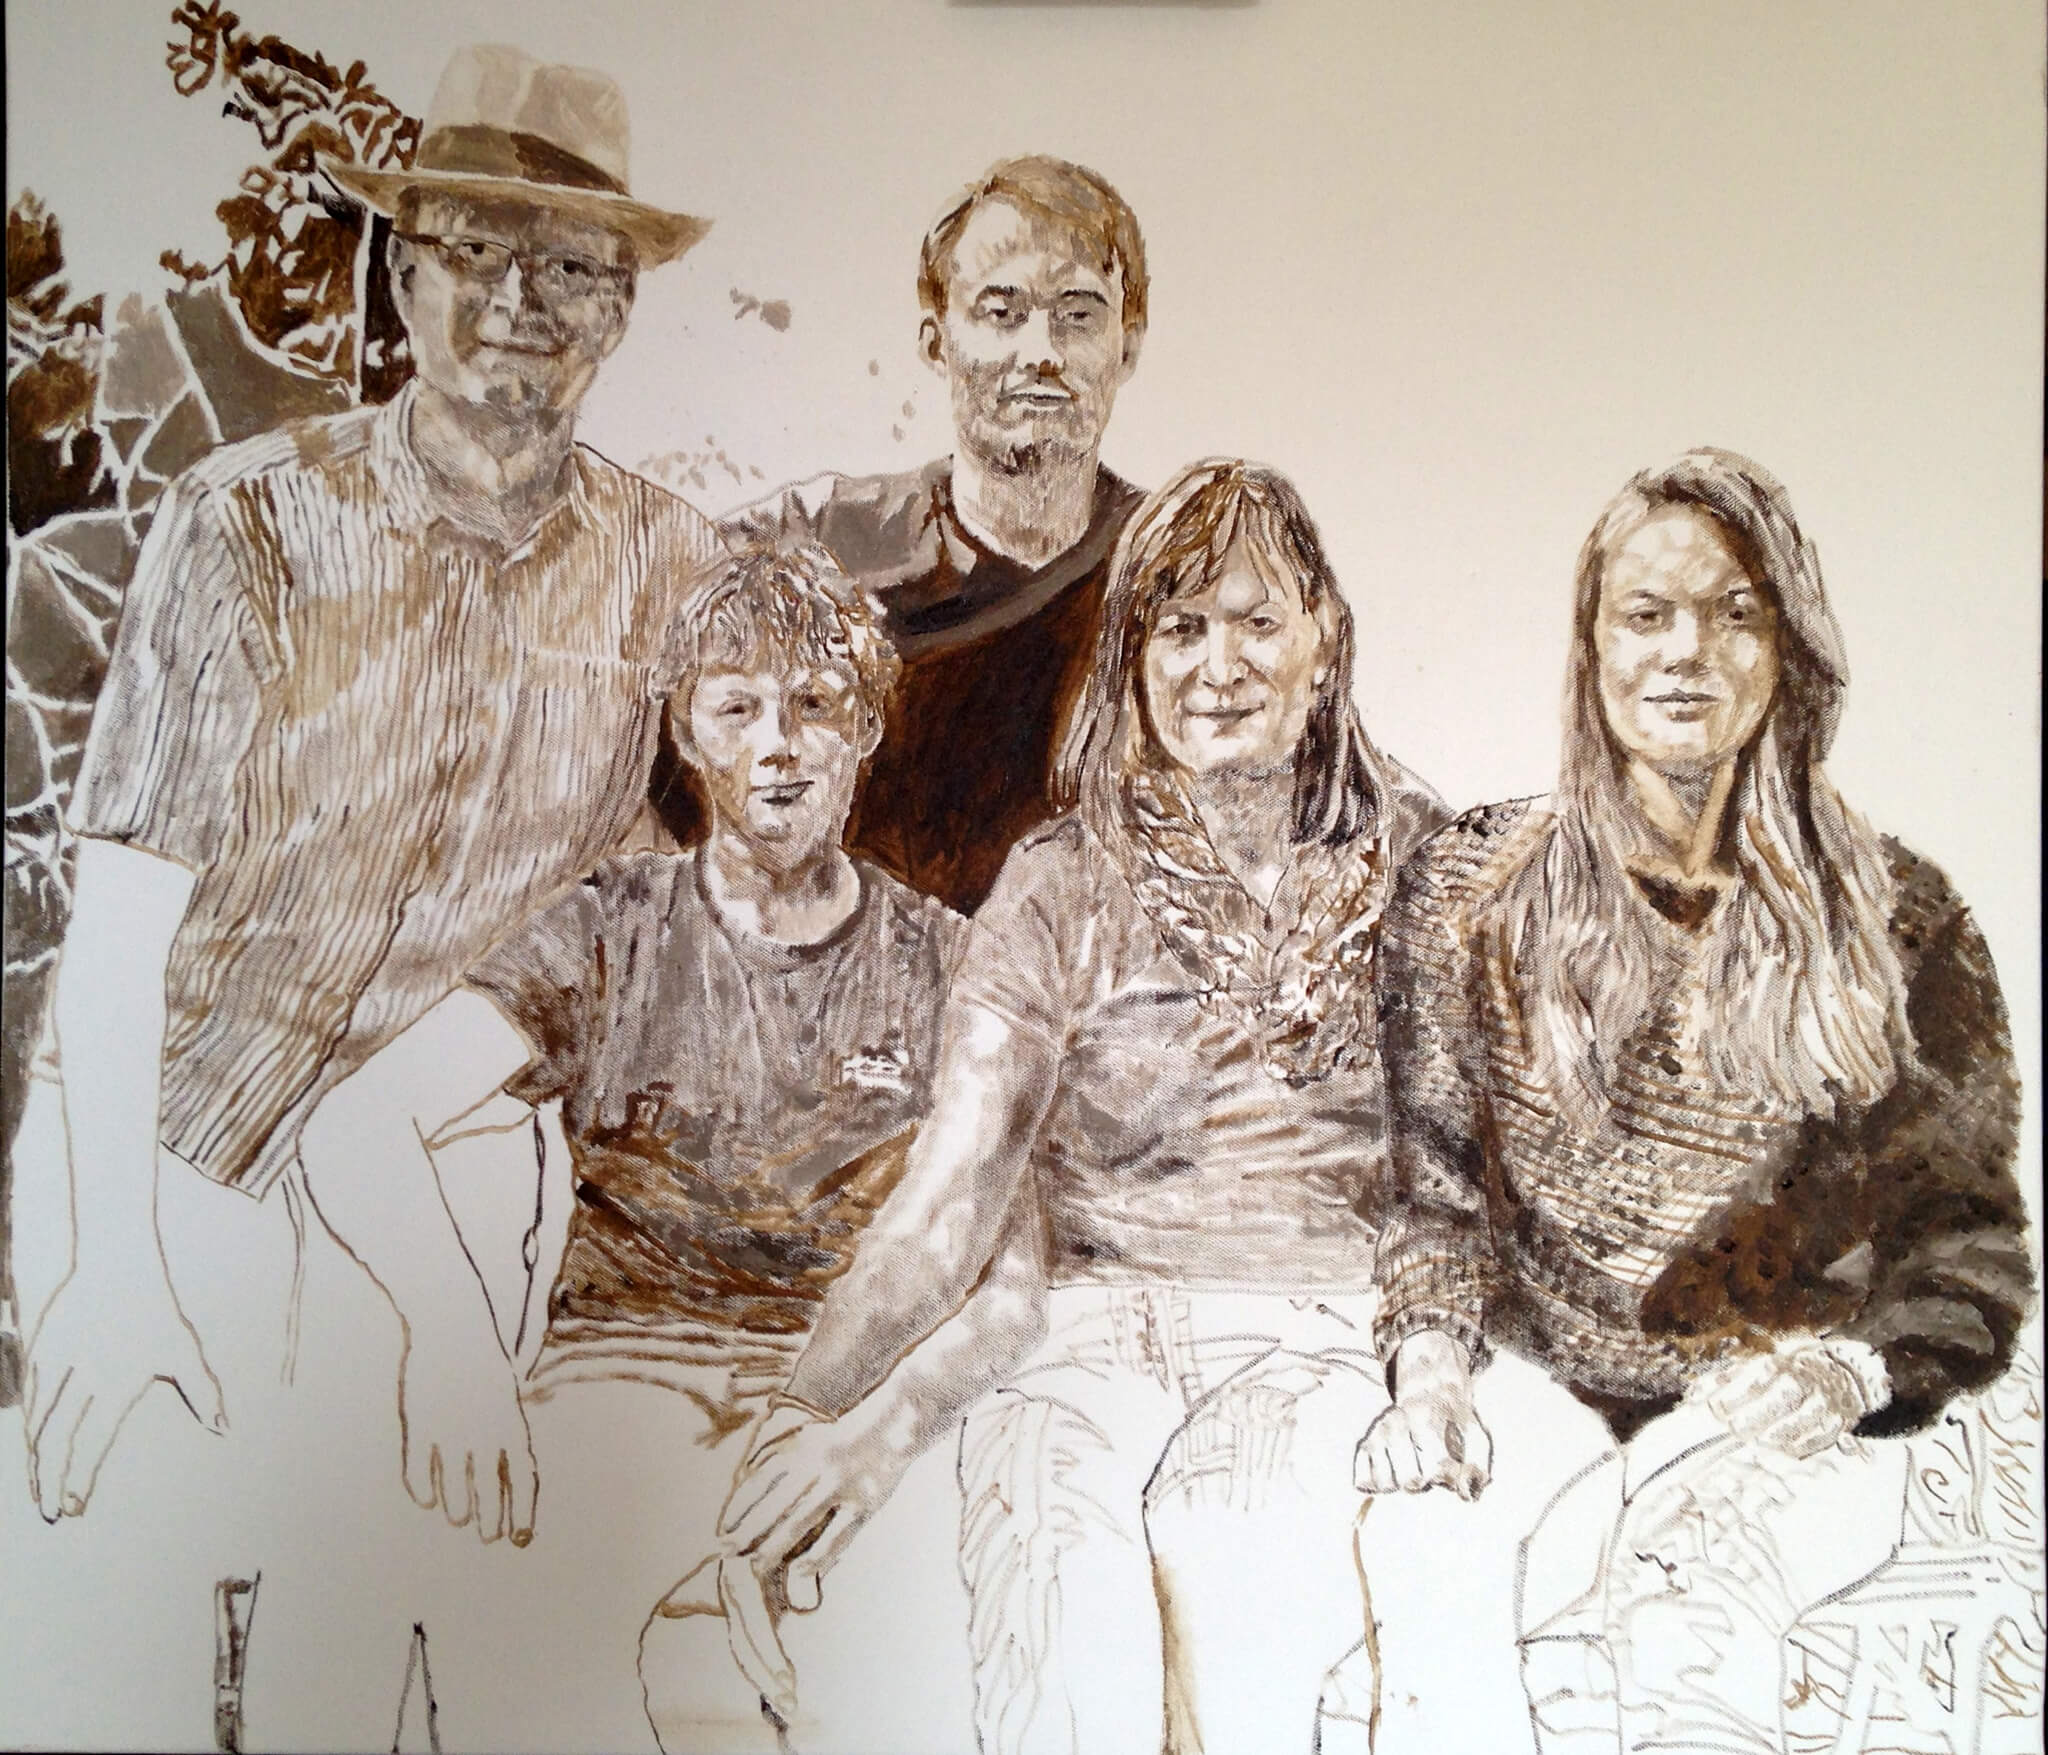 Artist Stella Tooth's family portrait commission in oils on canvas at stage of monochrome underpainting.